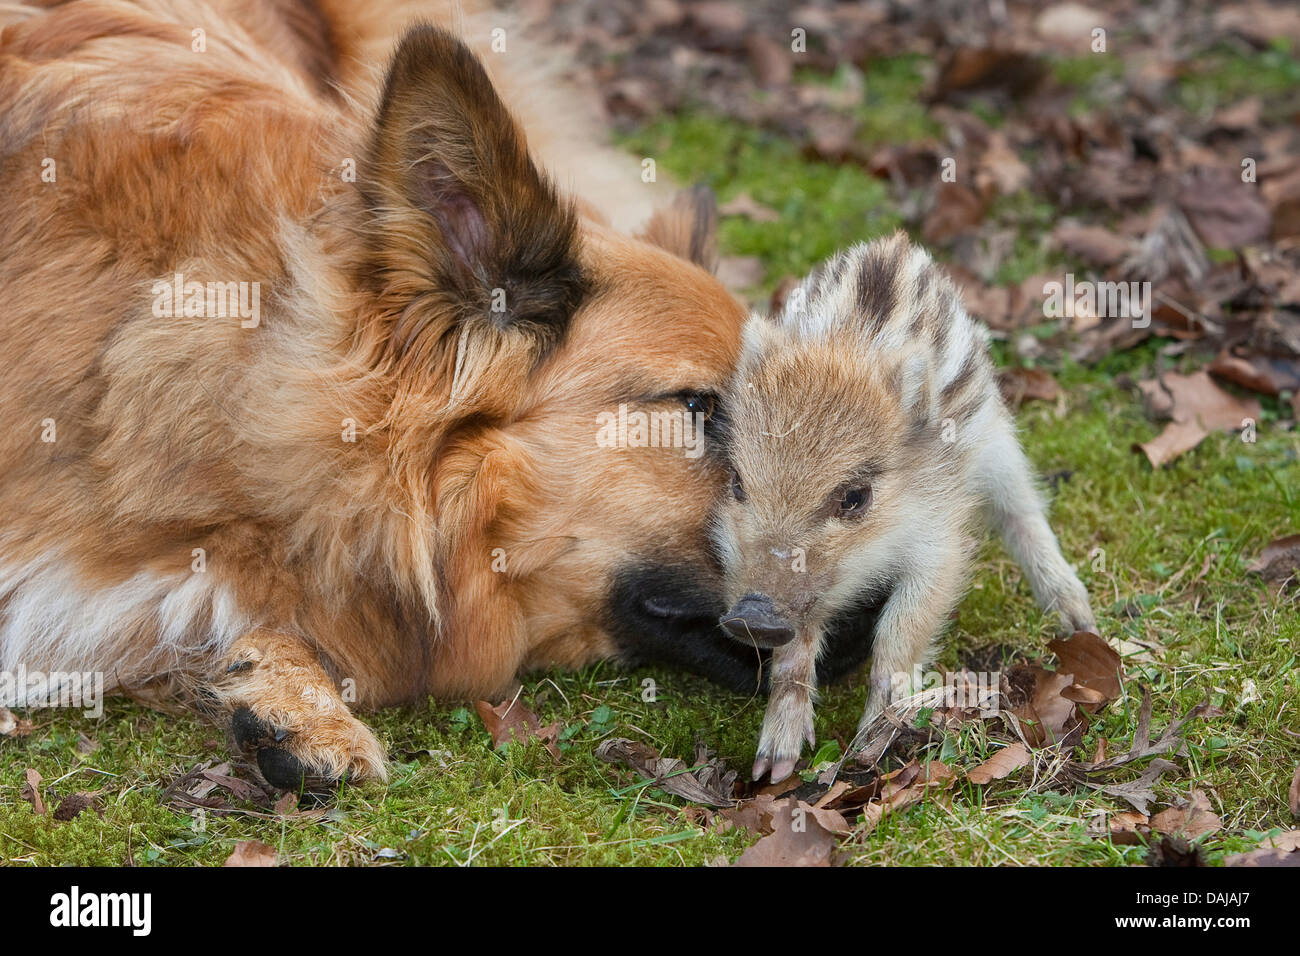 wild boar, pig, wild boar (Sus scrofa), gentle young animal playing with a dog in the garden, Germany - Stock Image